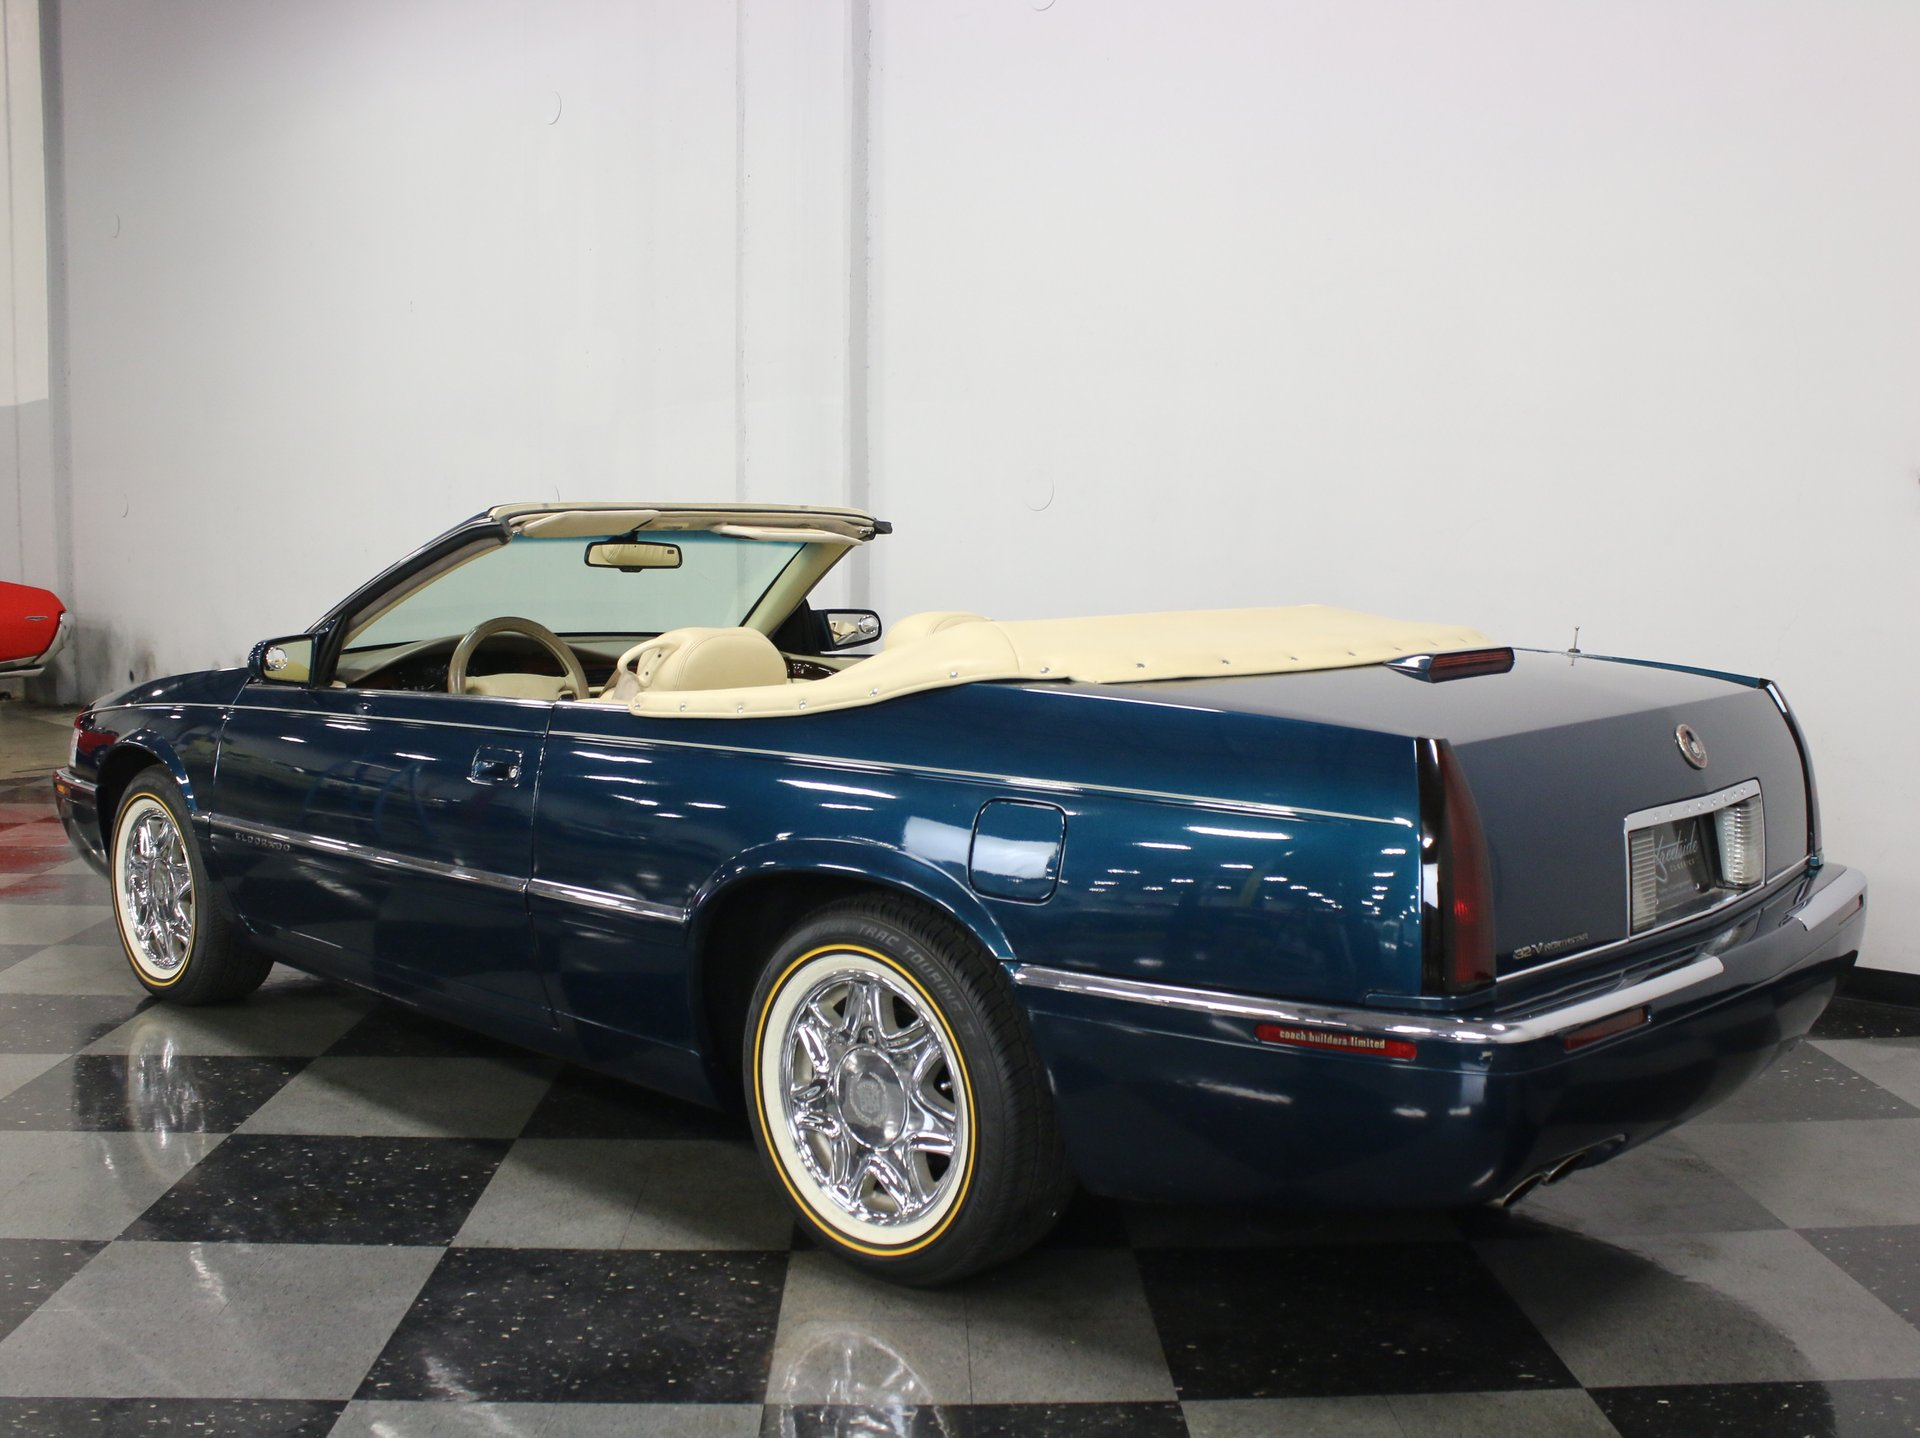 1995 cadillac eldorado streetside classics the nation s trusted classic car consignment dealer 1995 cadillac eldorado streetside